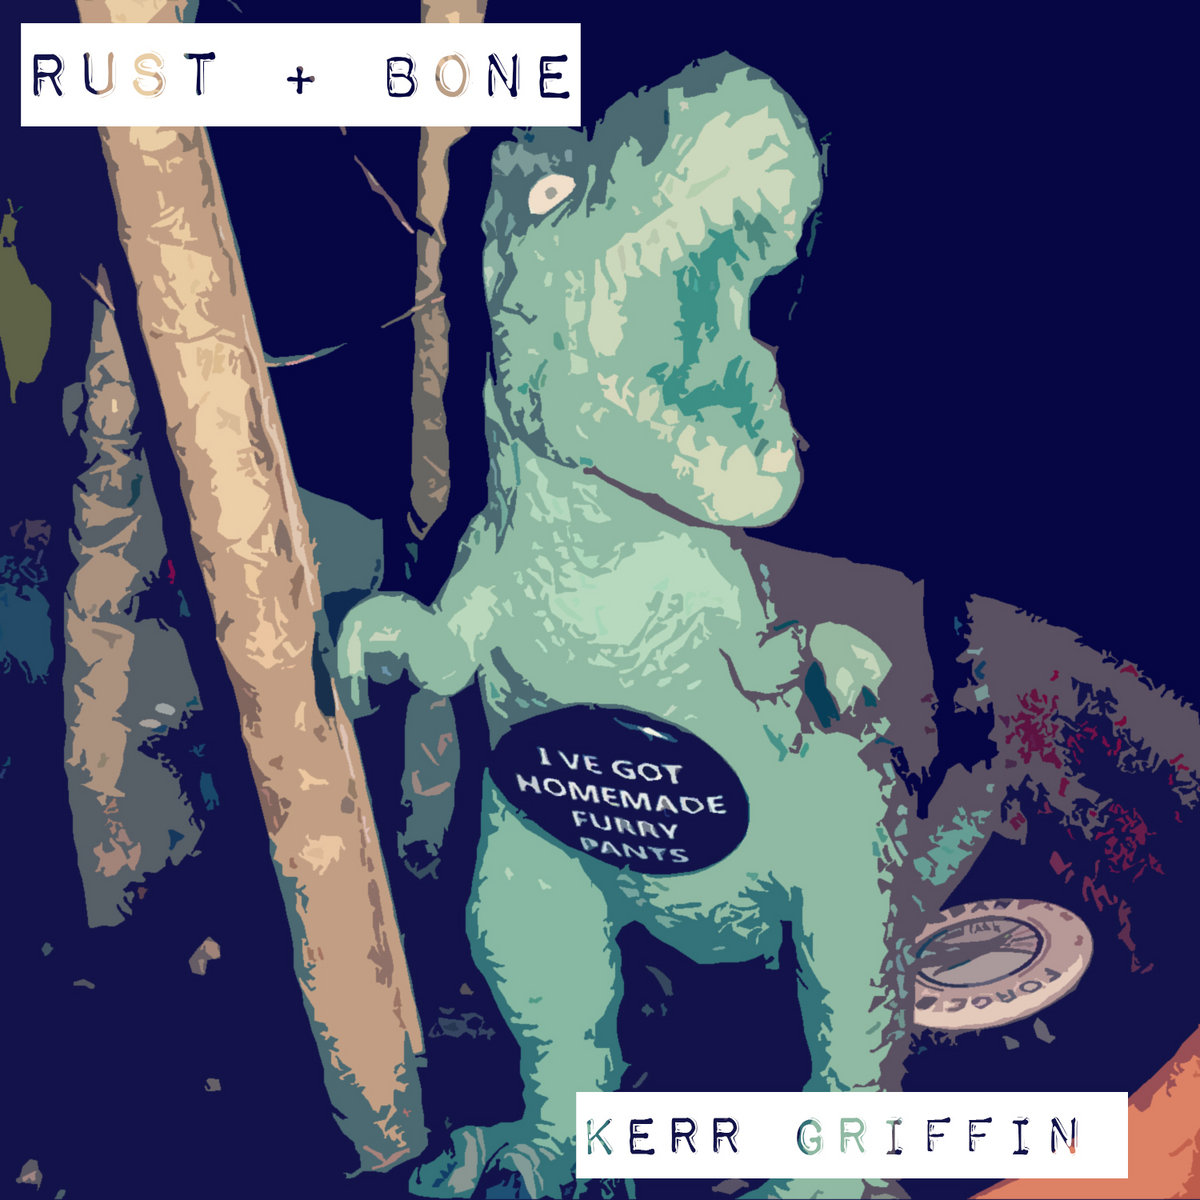 rust and bone download free